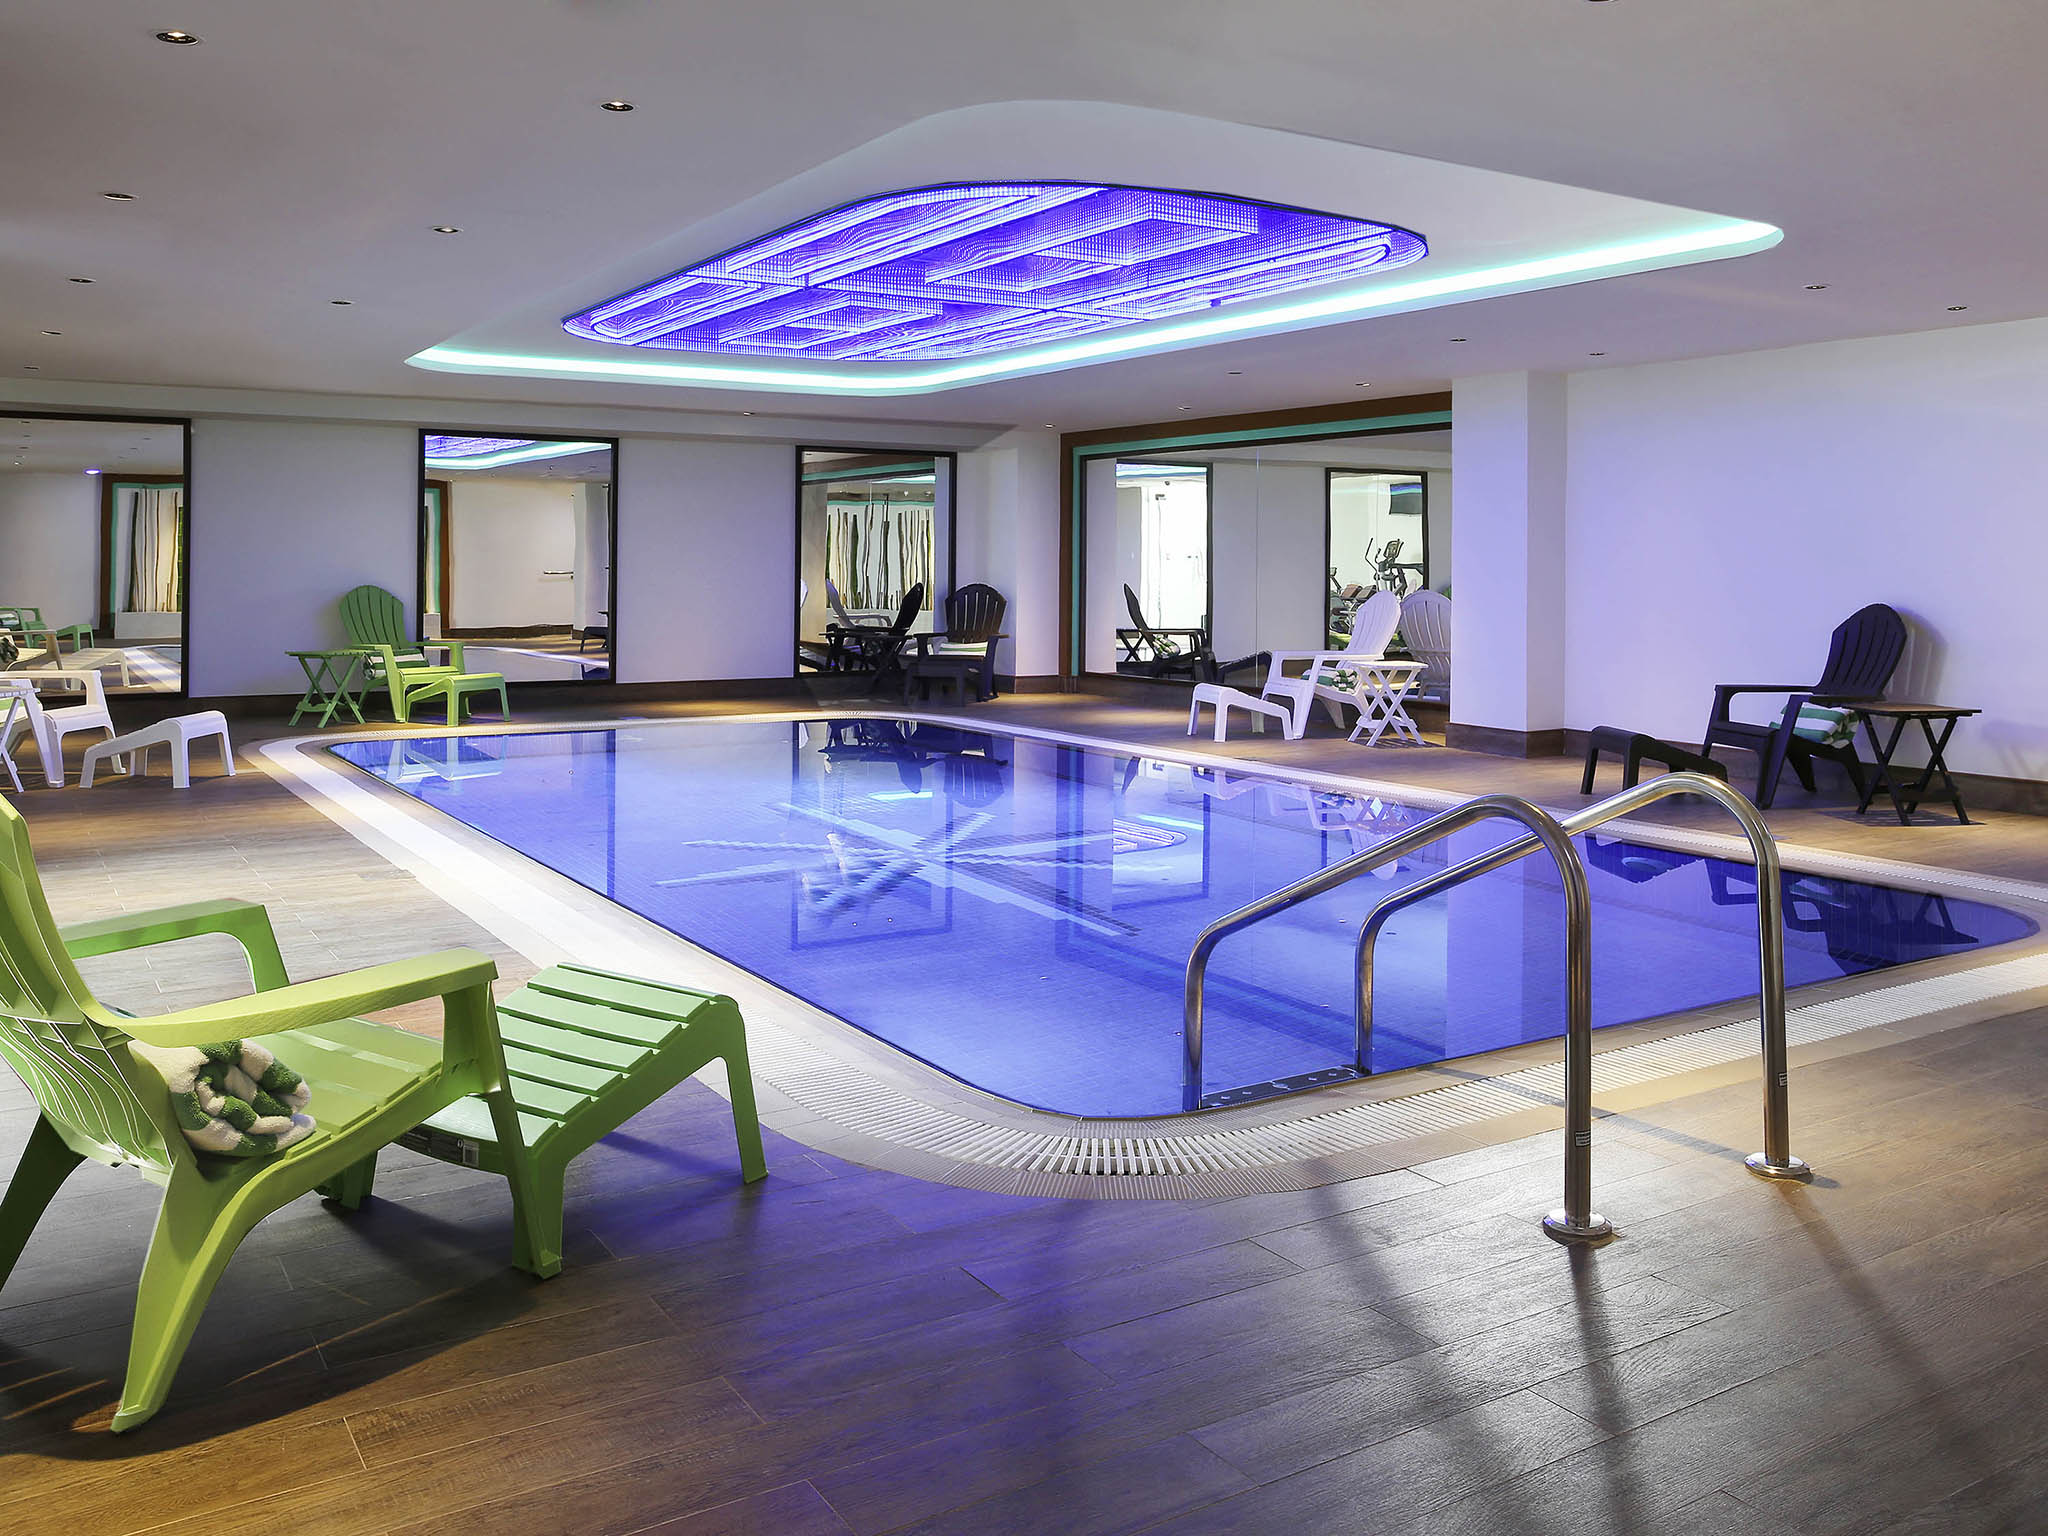 Hotel In Dubai Ibis Styles Dubai Jumeira With Pool Gym